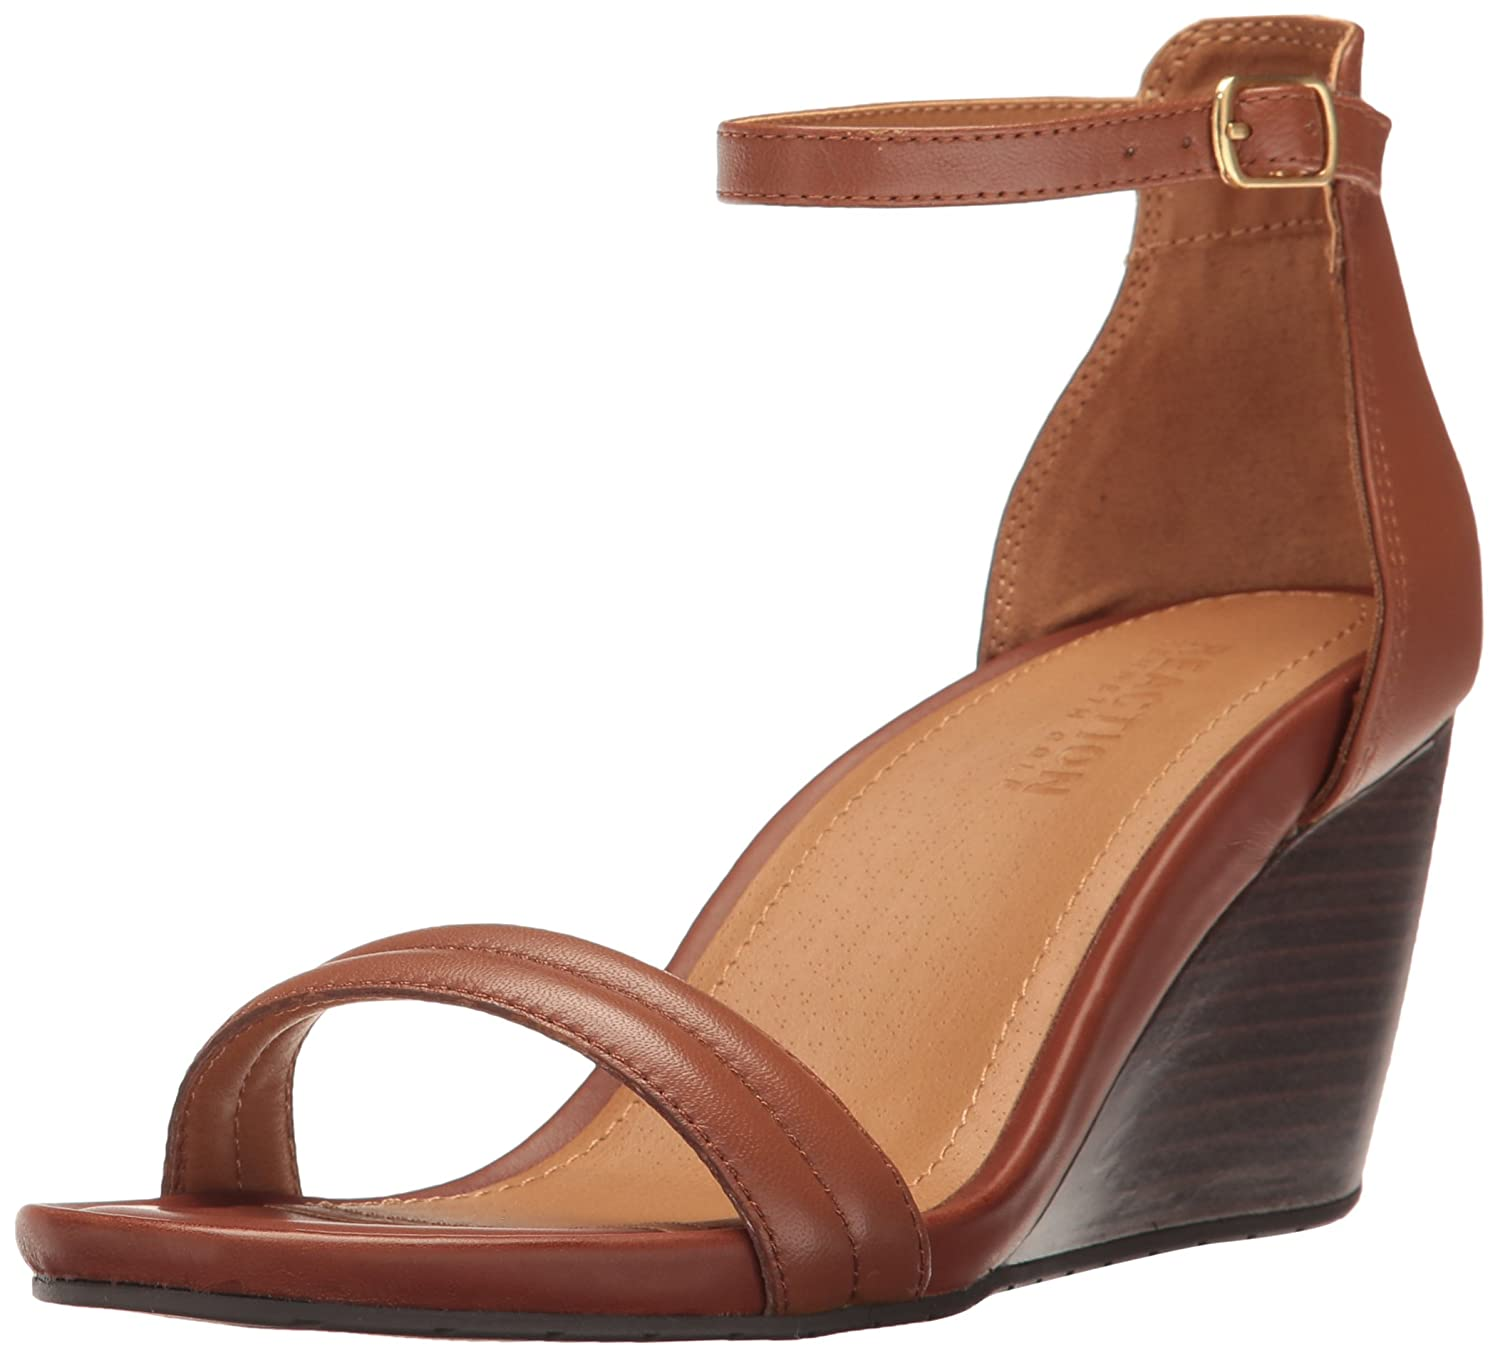 Kenneth Cole REACTION Women's Cake Icing Open Toe Padded Straps Wedge Sandal B06WGRVG7N 8.5 B(M) US|Cognac